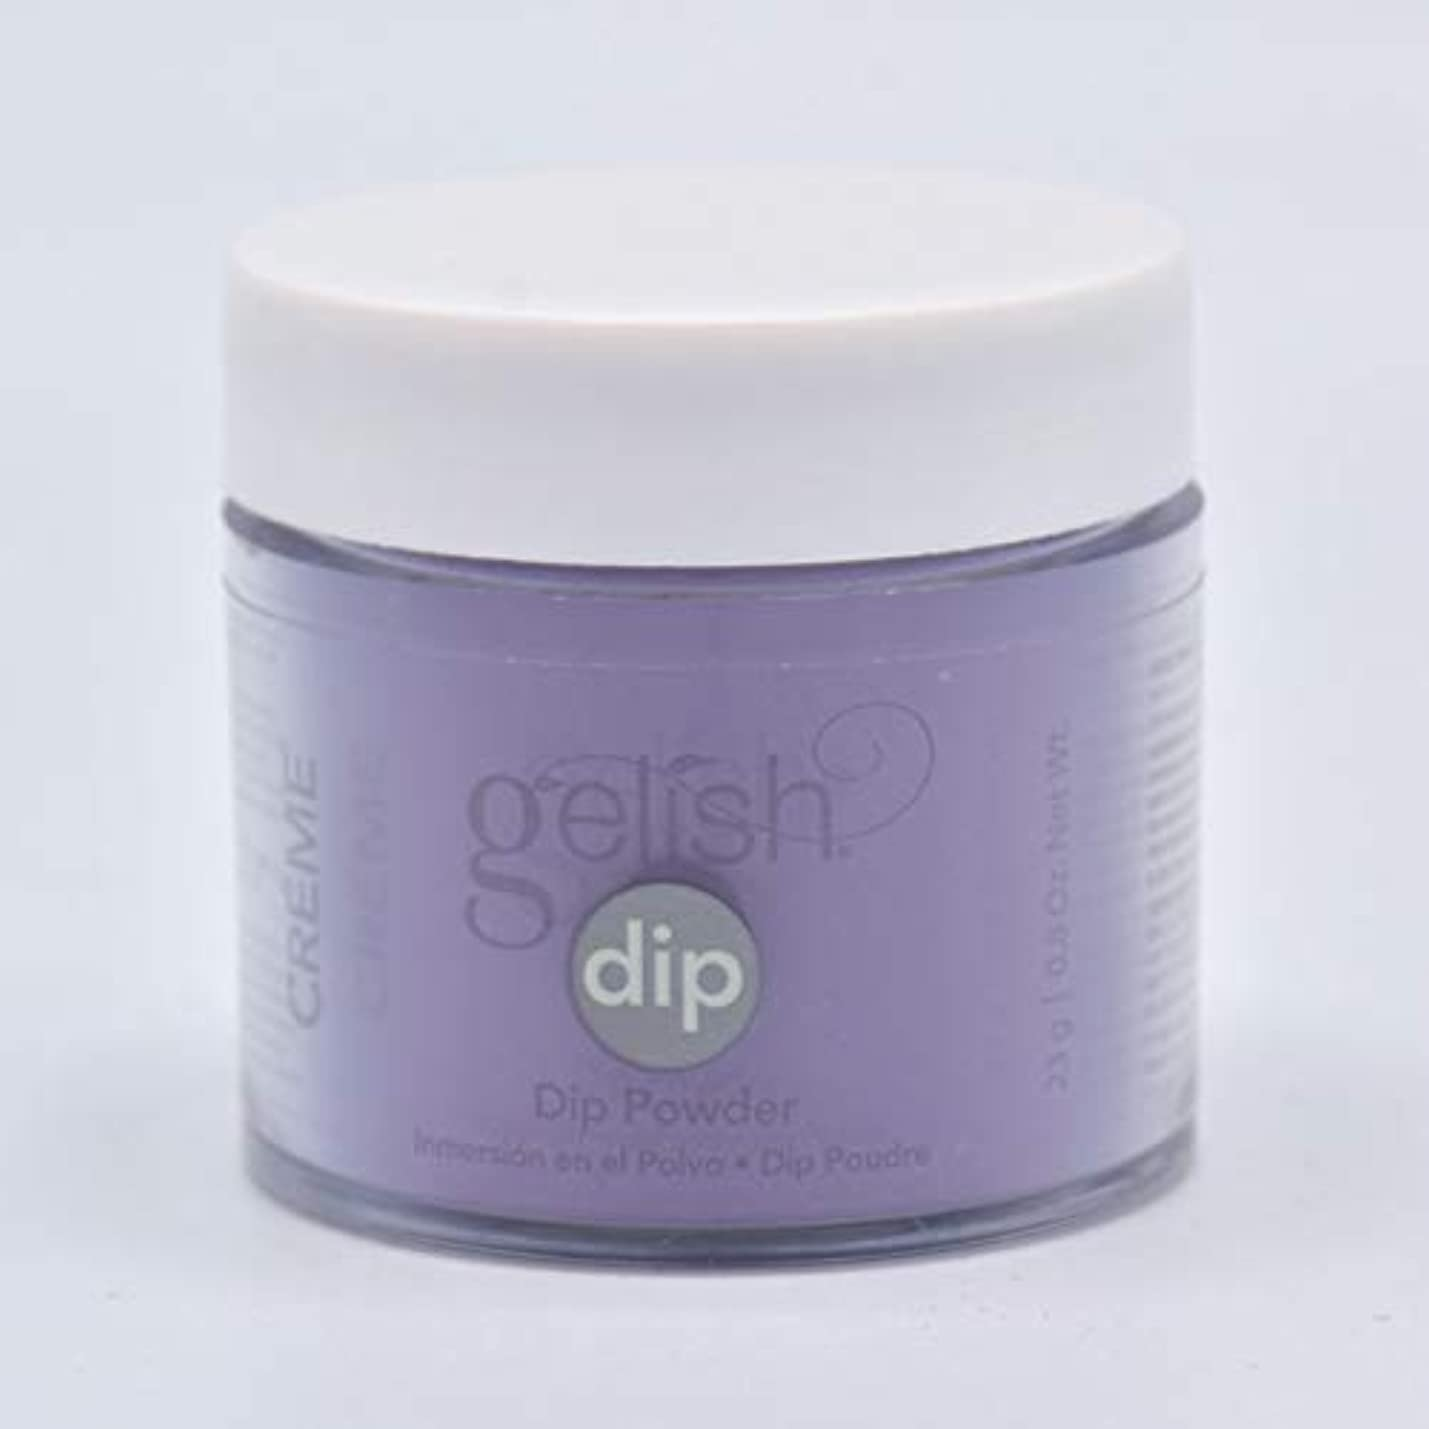 Harmony Gelish - Acrylic Dip Powder - Black Cherry Berry - 23g / 0.8oz